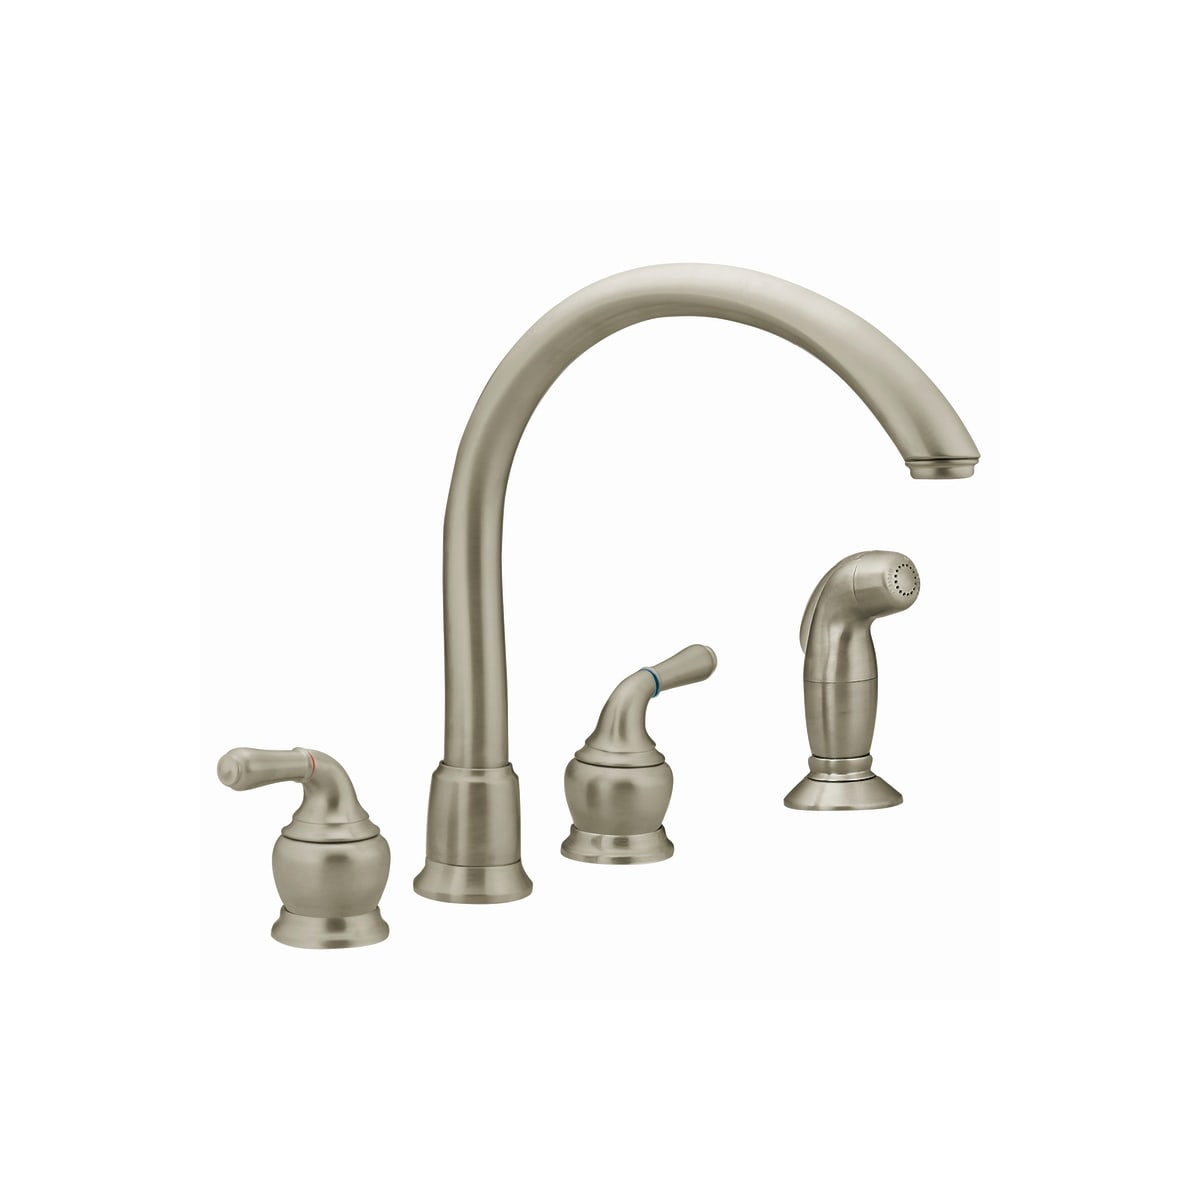 Moen 7786 Chrome Double Handle Kitchen Faucet With Gooseneck Spout And Sidespray From The Monticello Collection